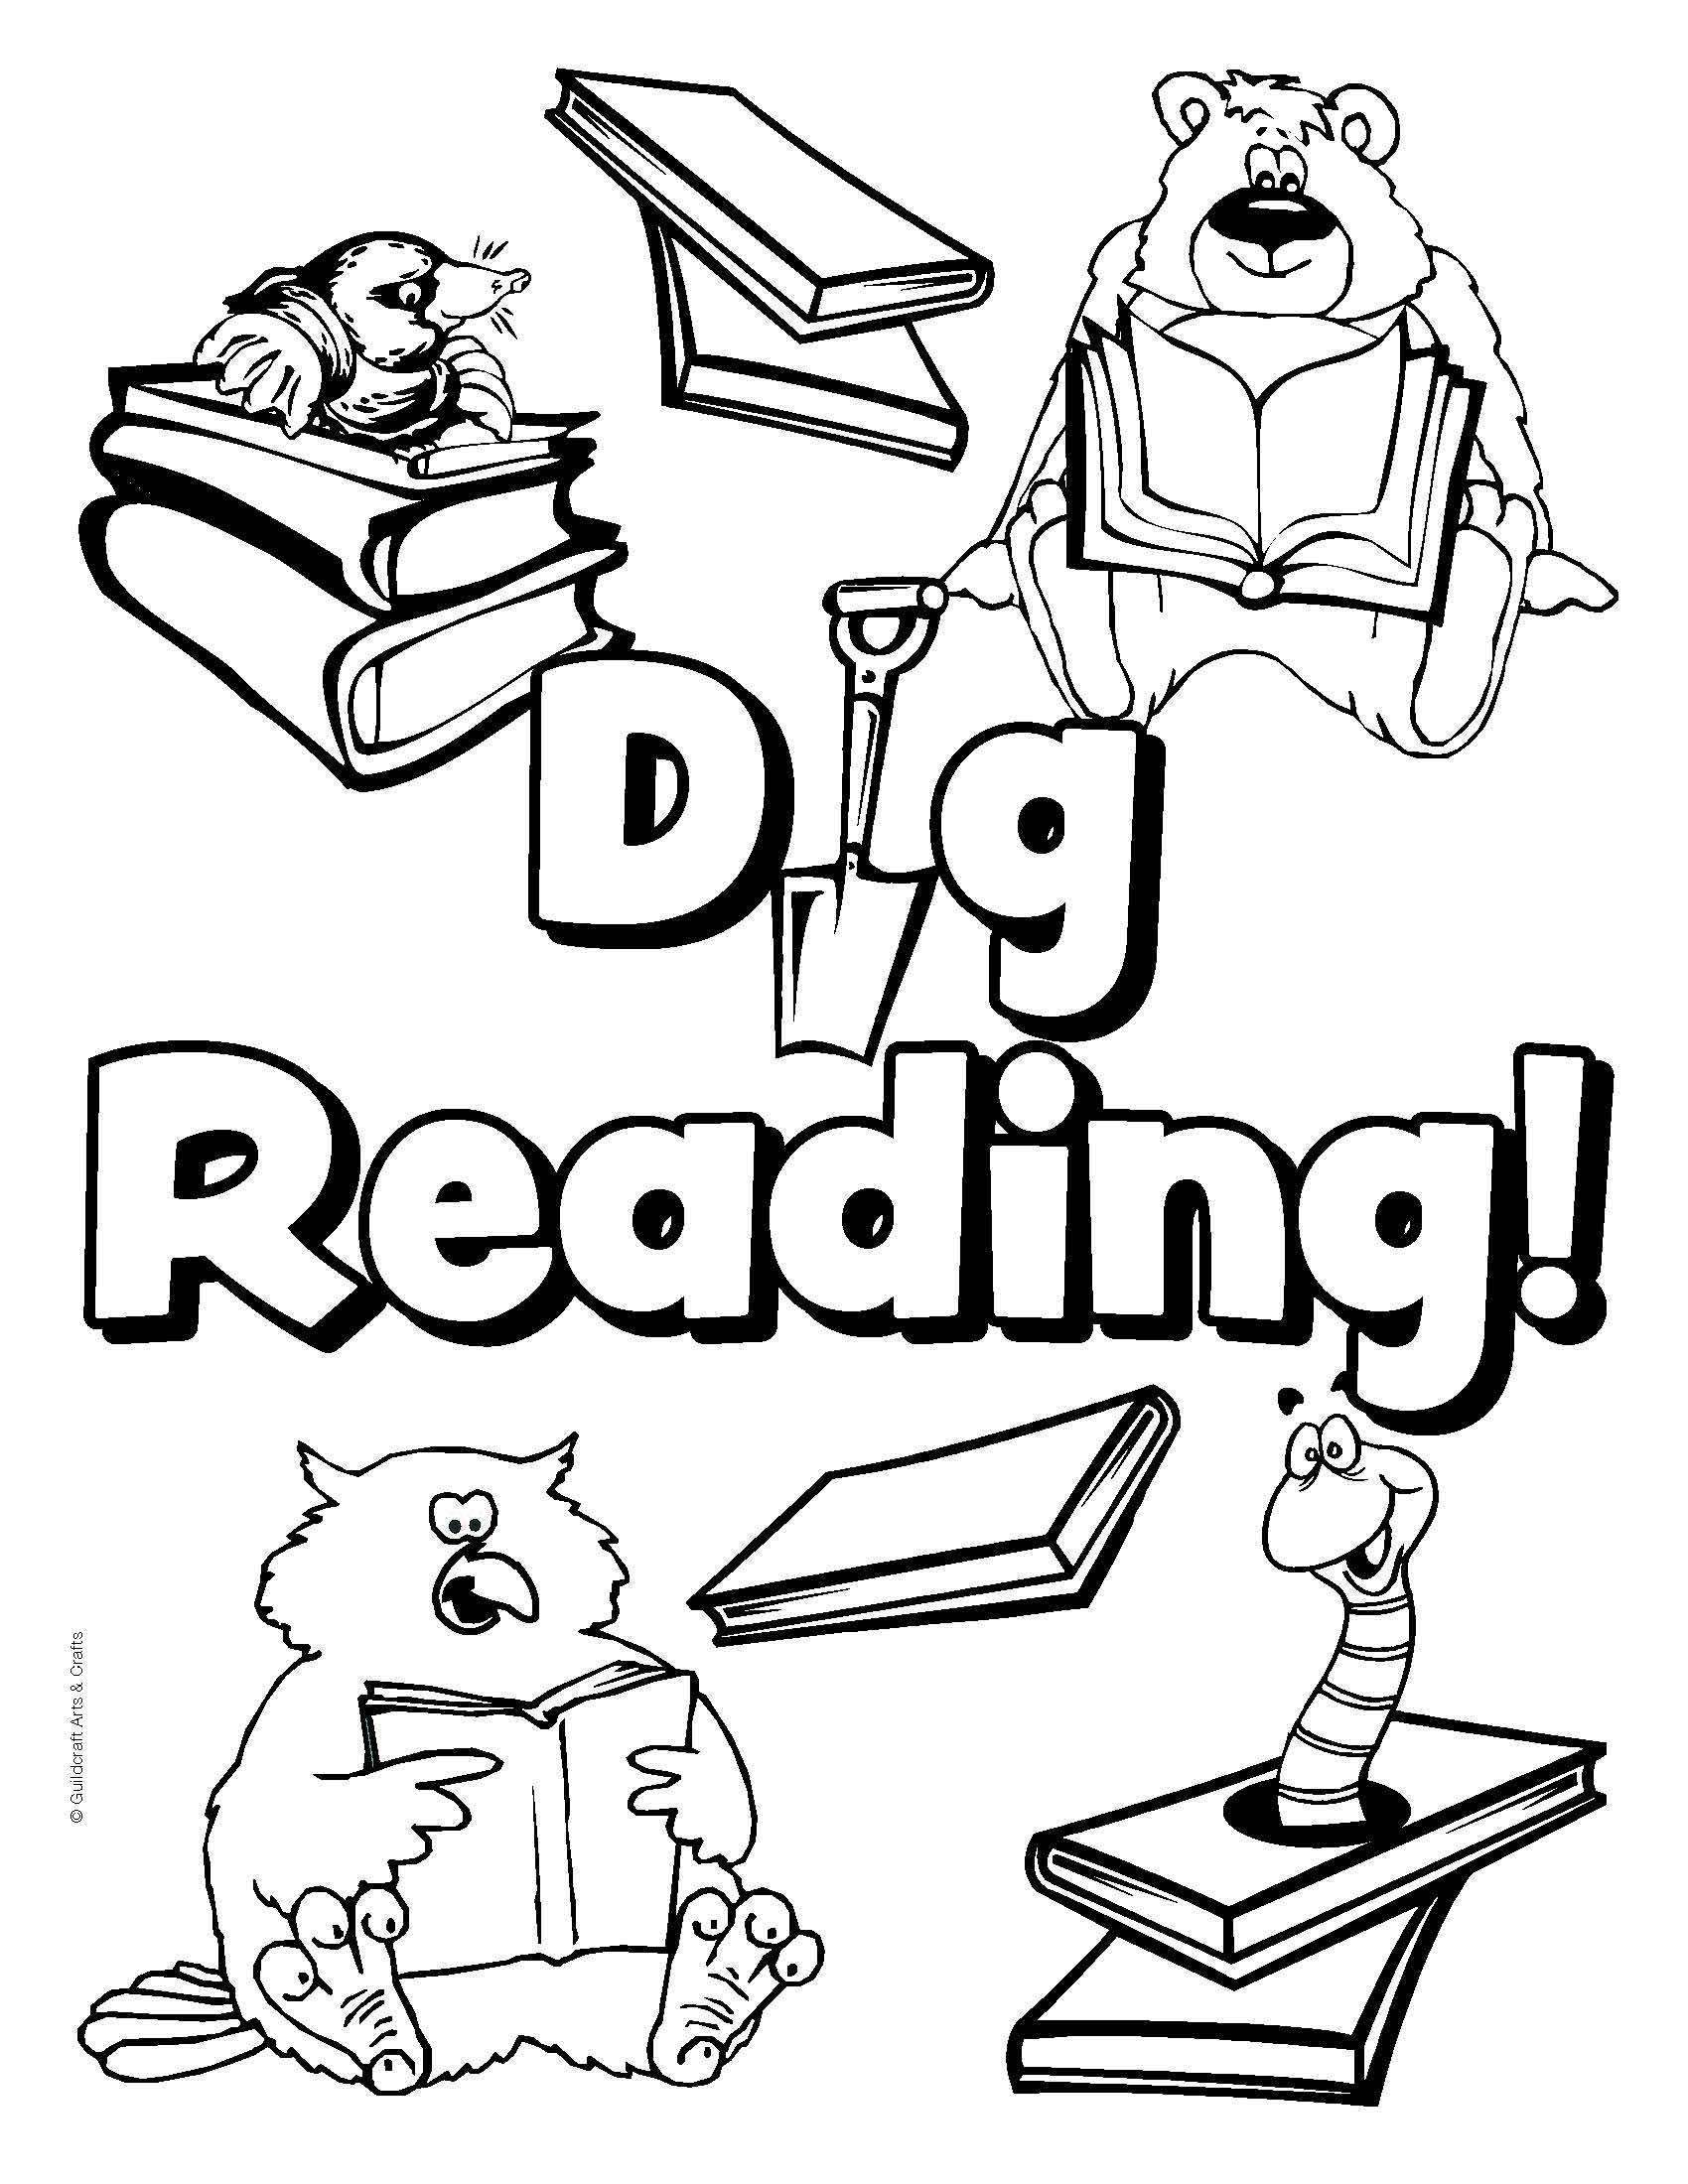 National Library Week Coloring Pages Download 8e - To print for your project